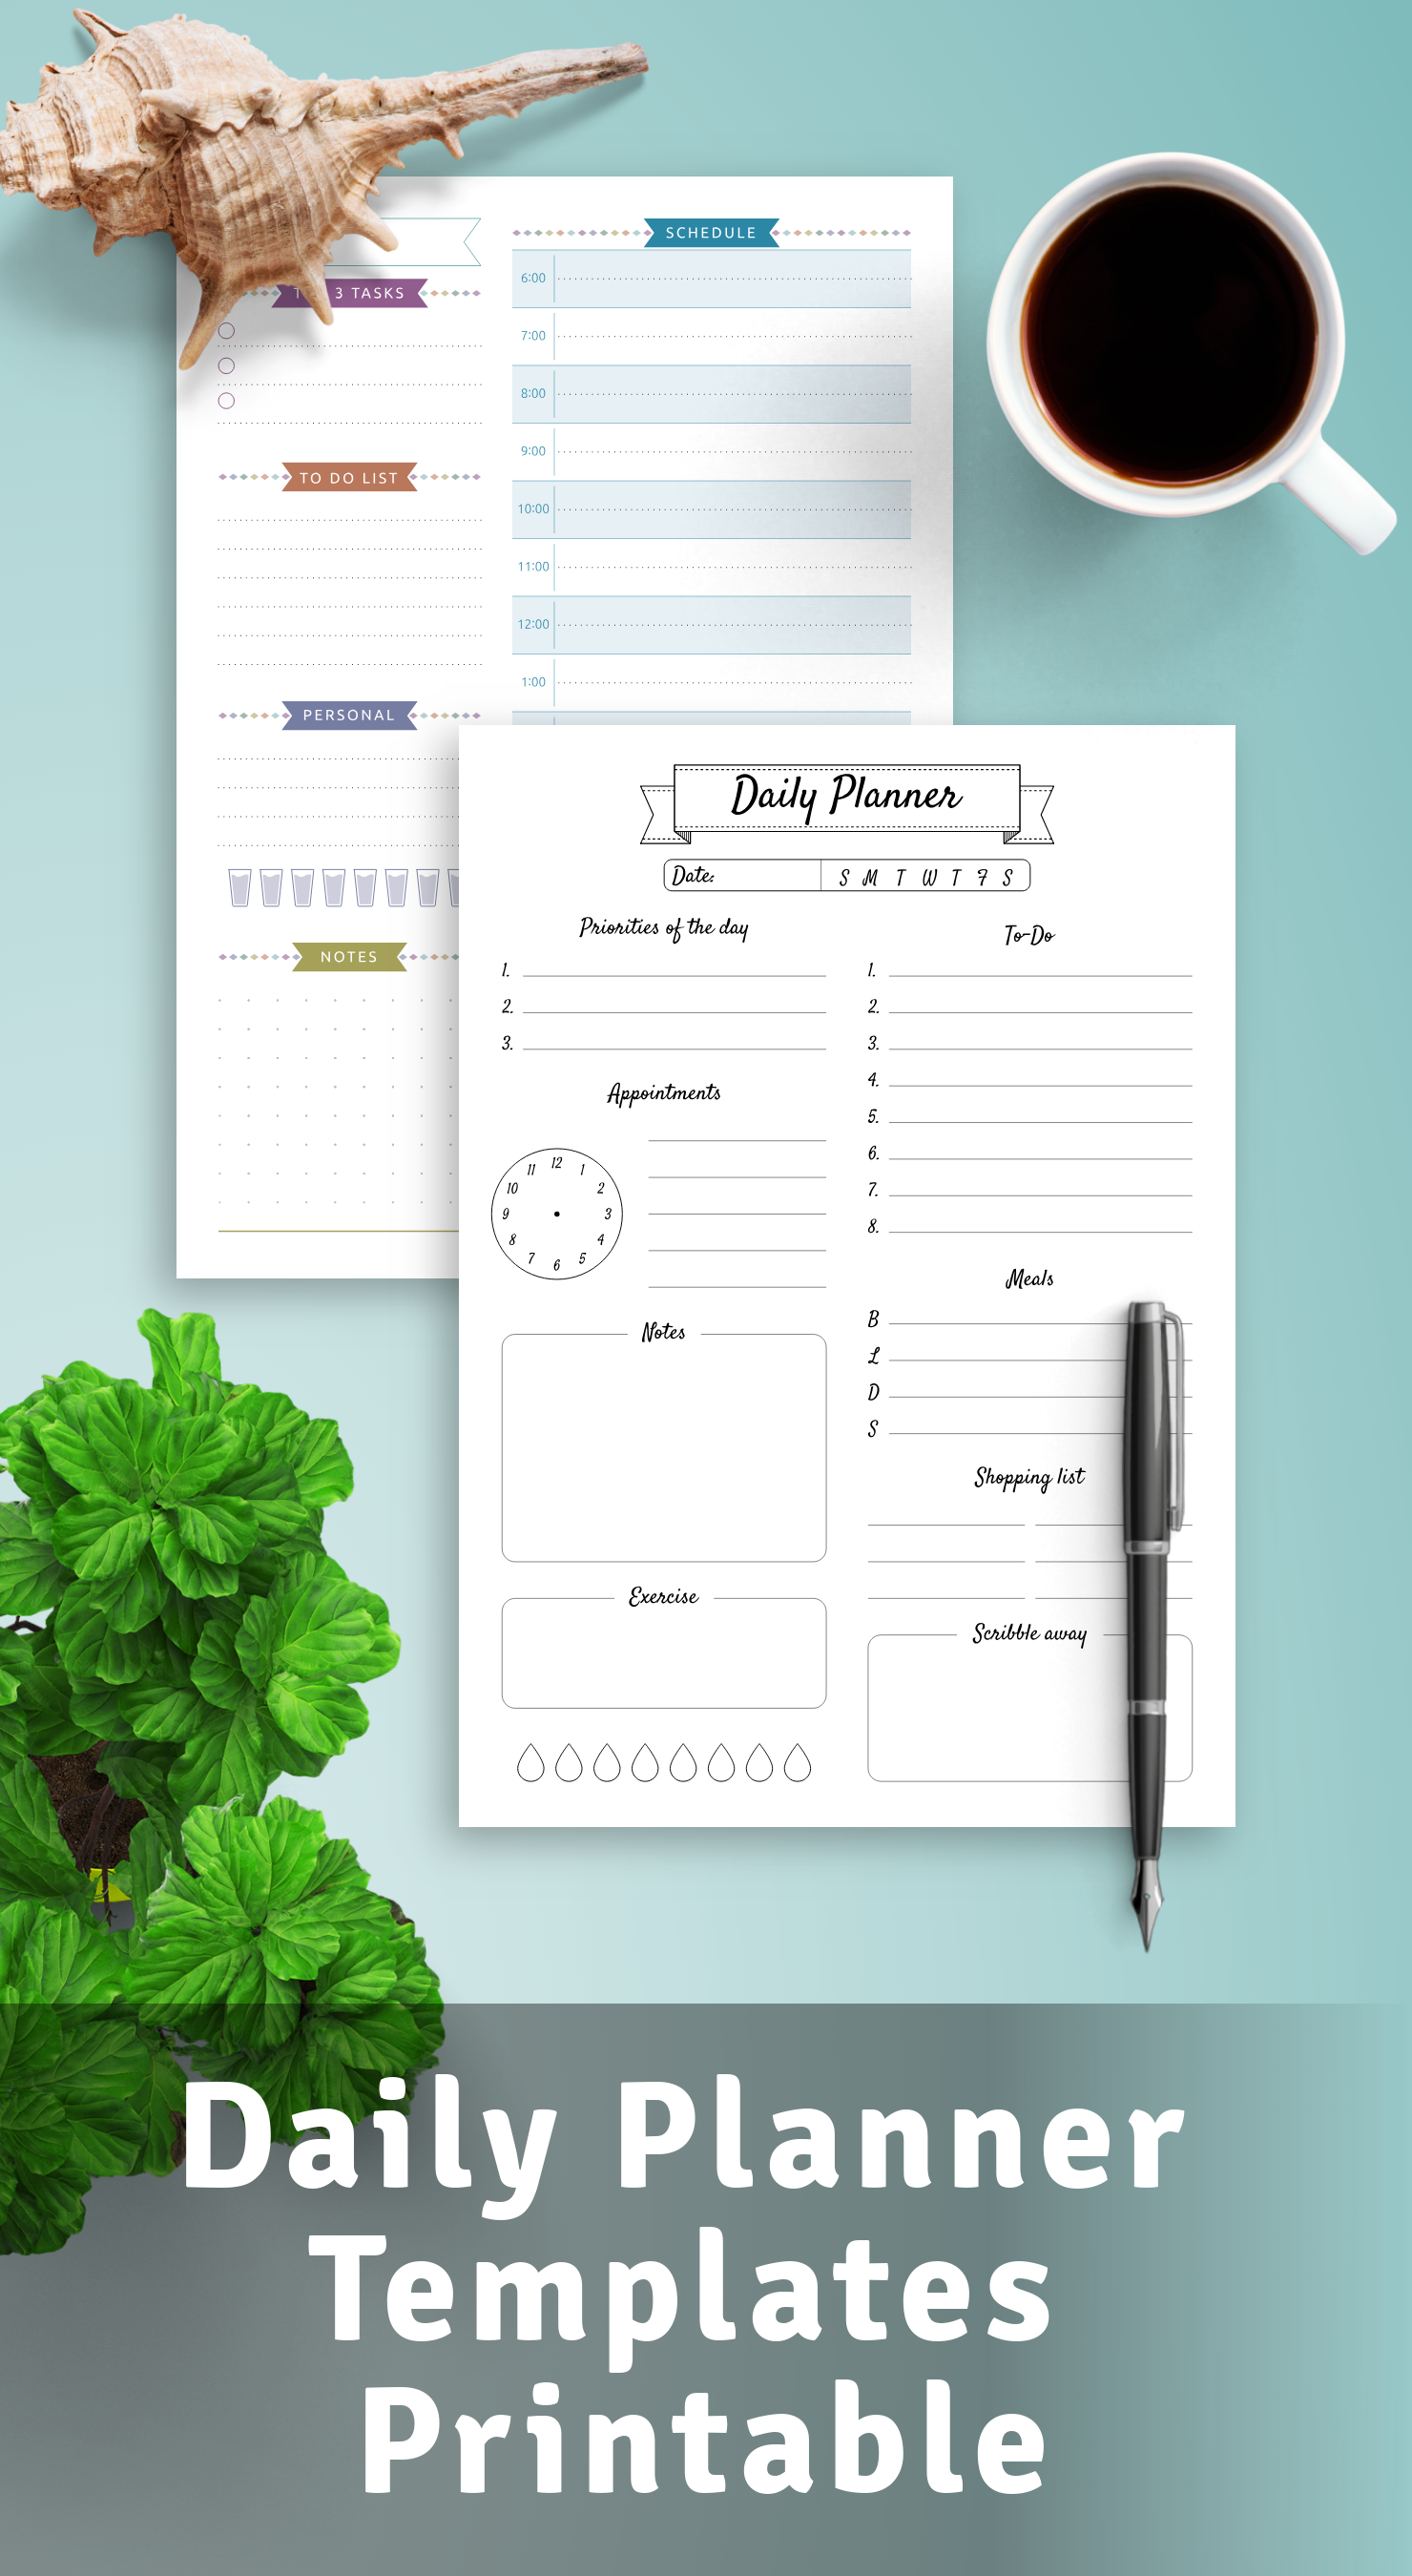 Get Printable Daily Planner Templates